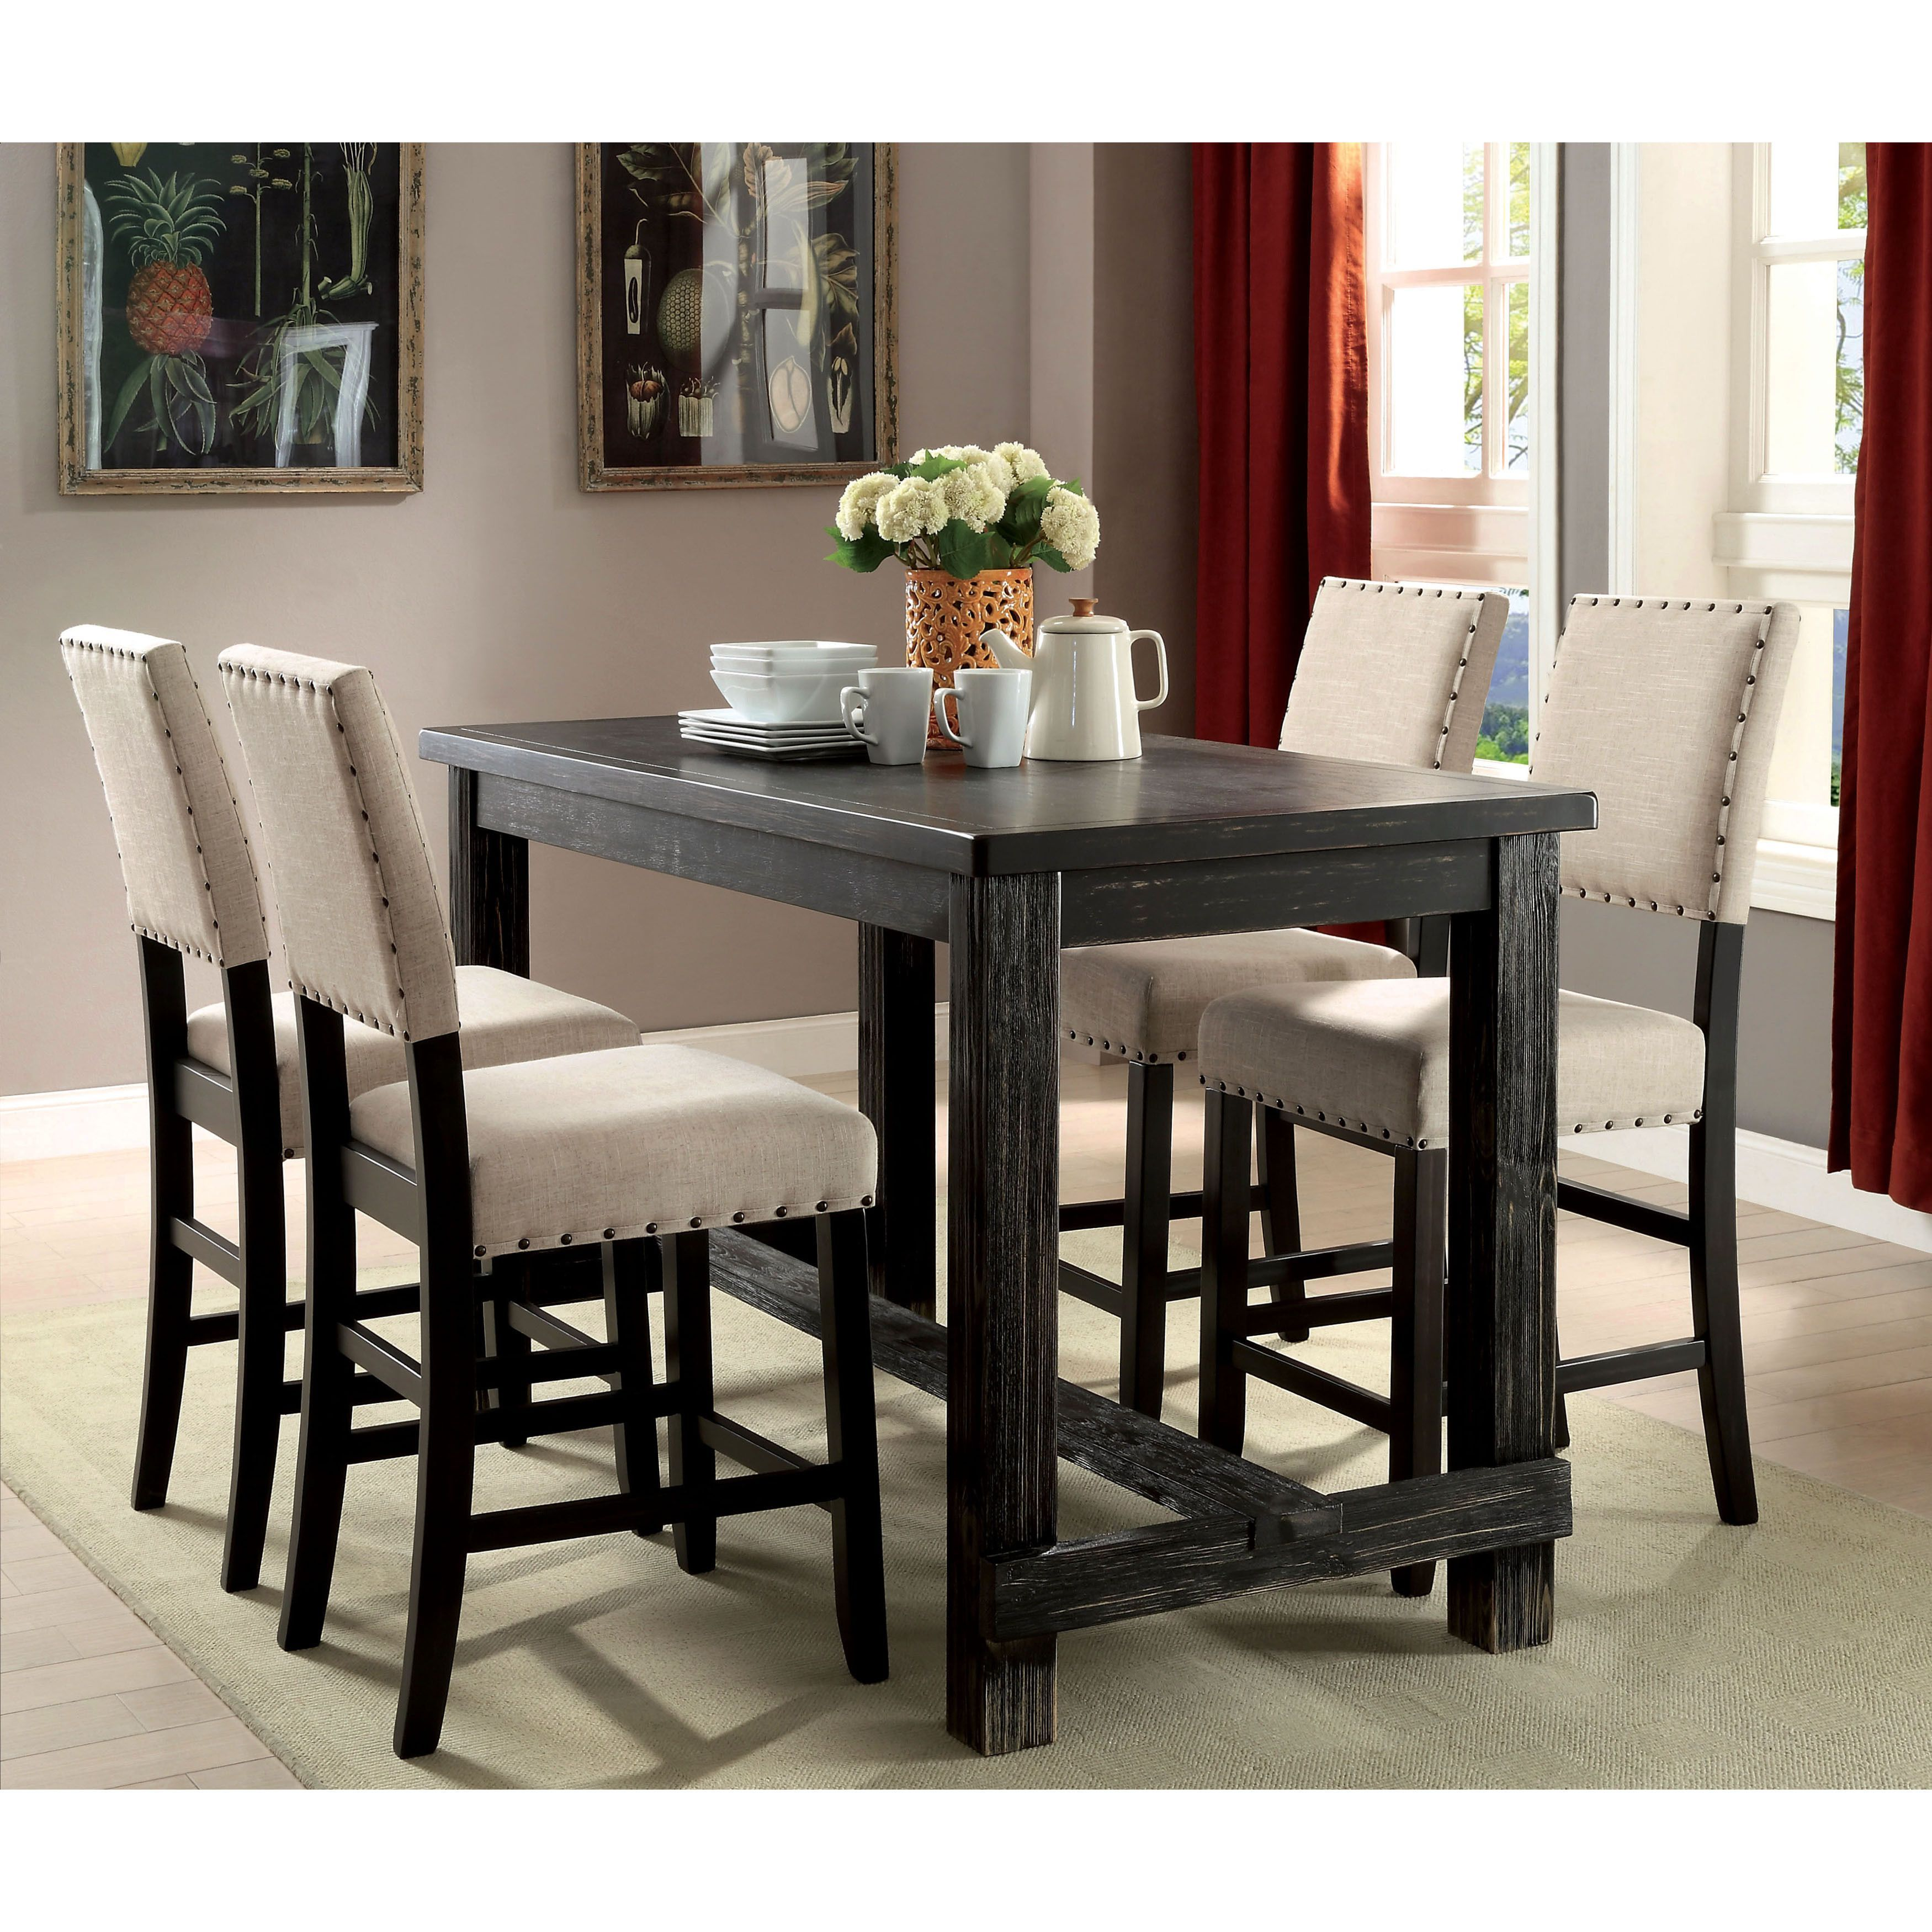 Overstock Com Online Shopping Bedding Furniture Electronics Jewelry Clothing More Counter Height Dining Table Dining Table In Kitchen Counter Height Pub Table